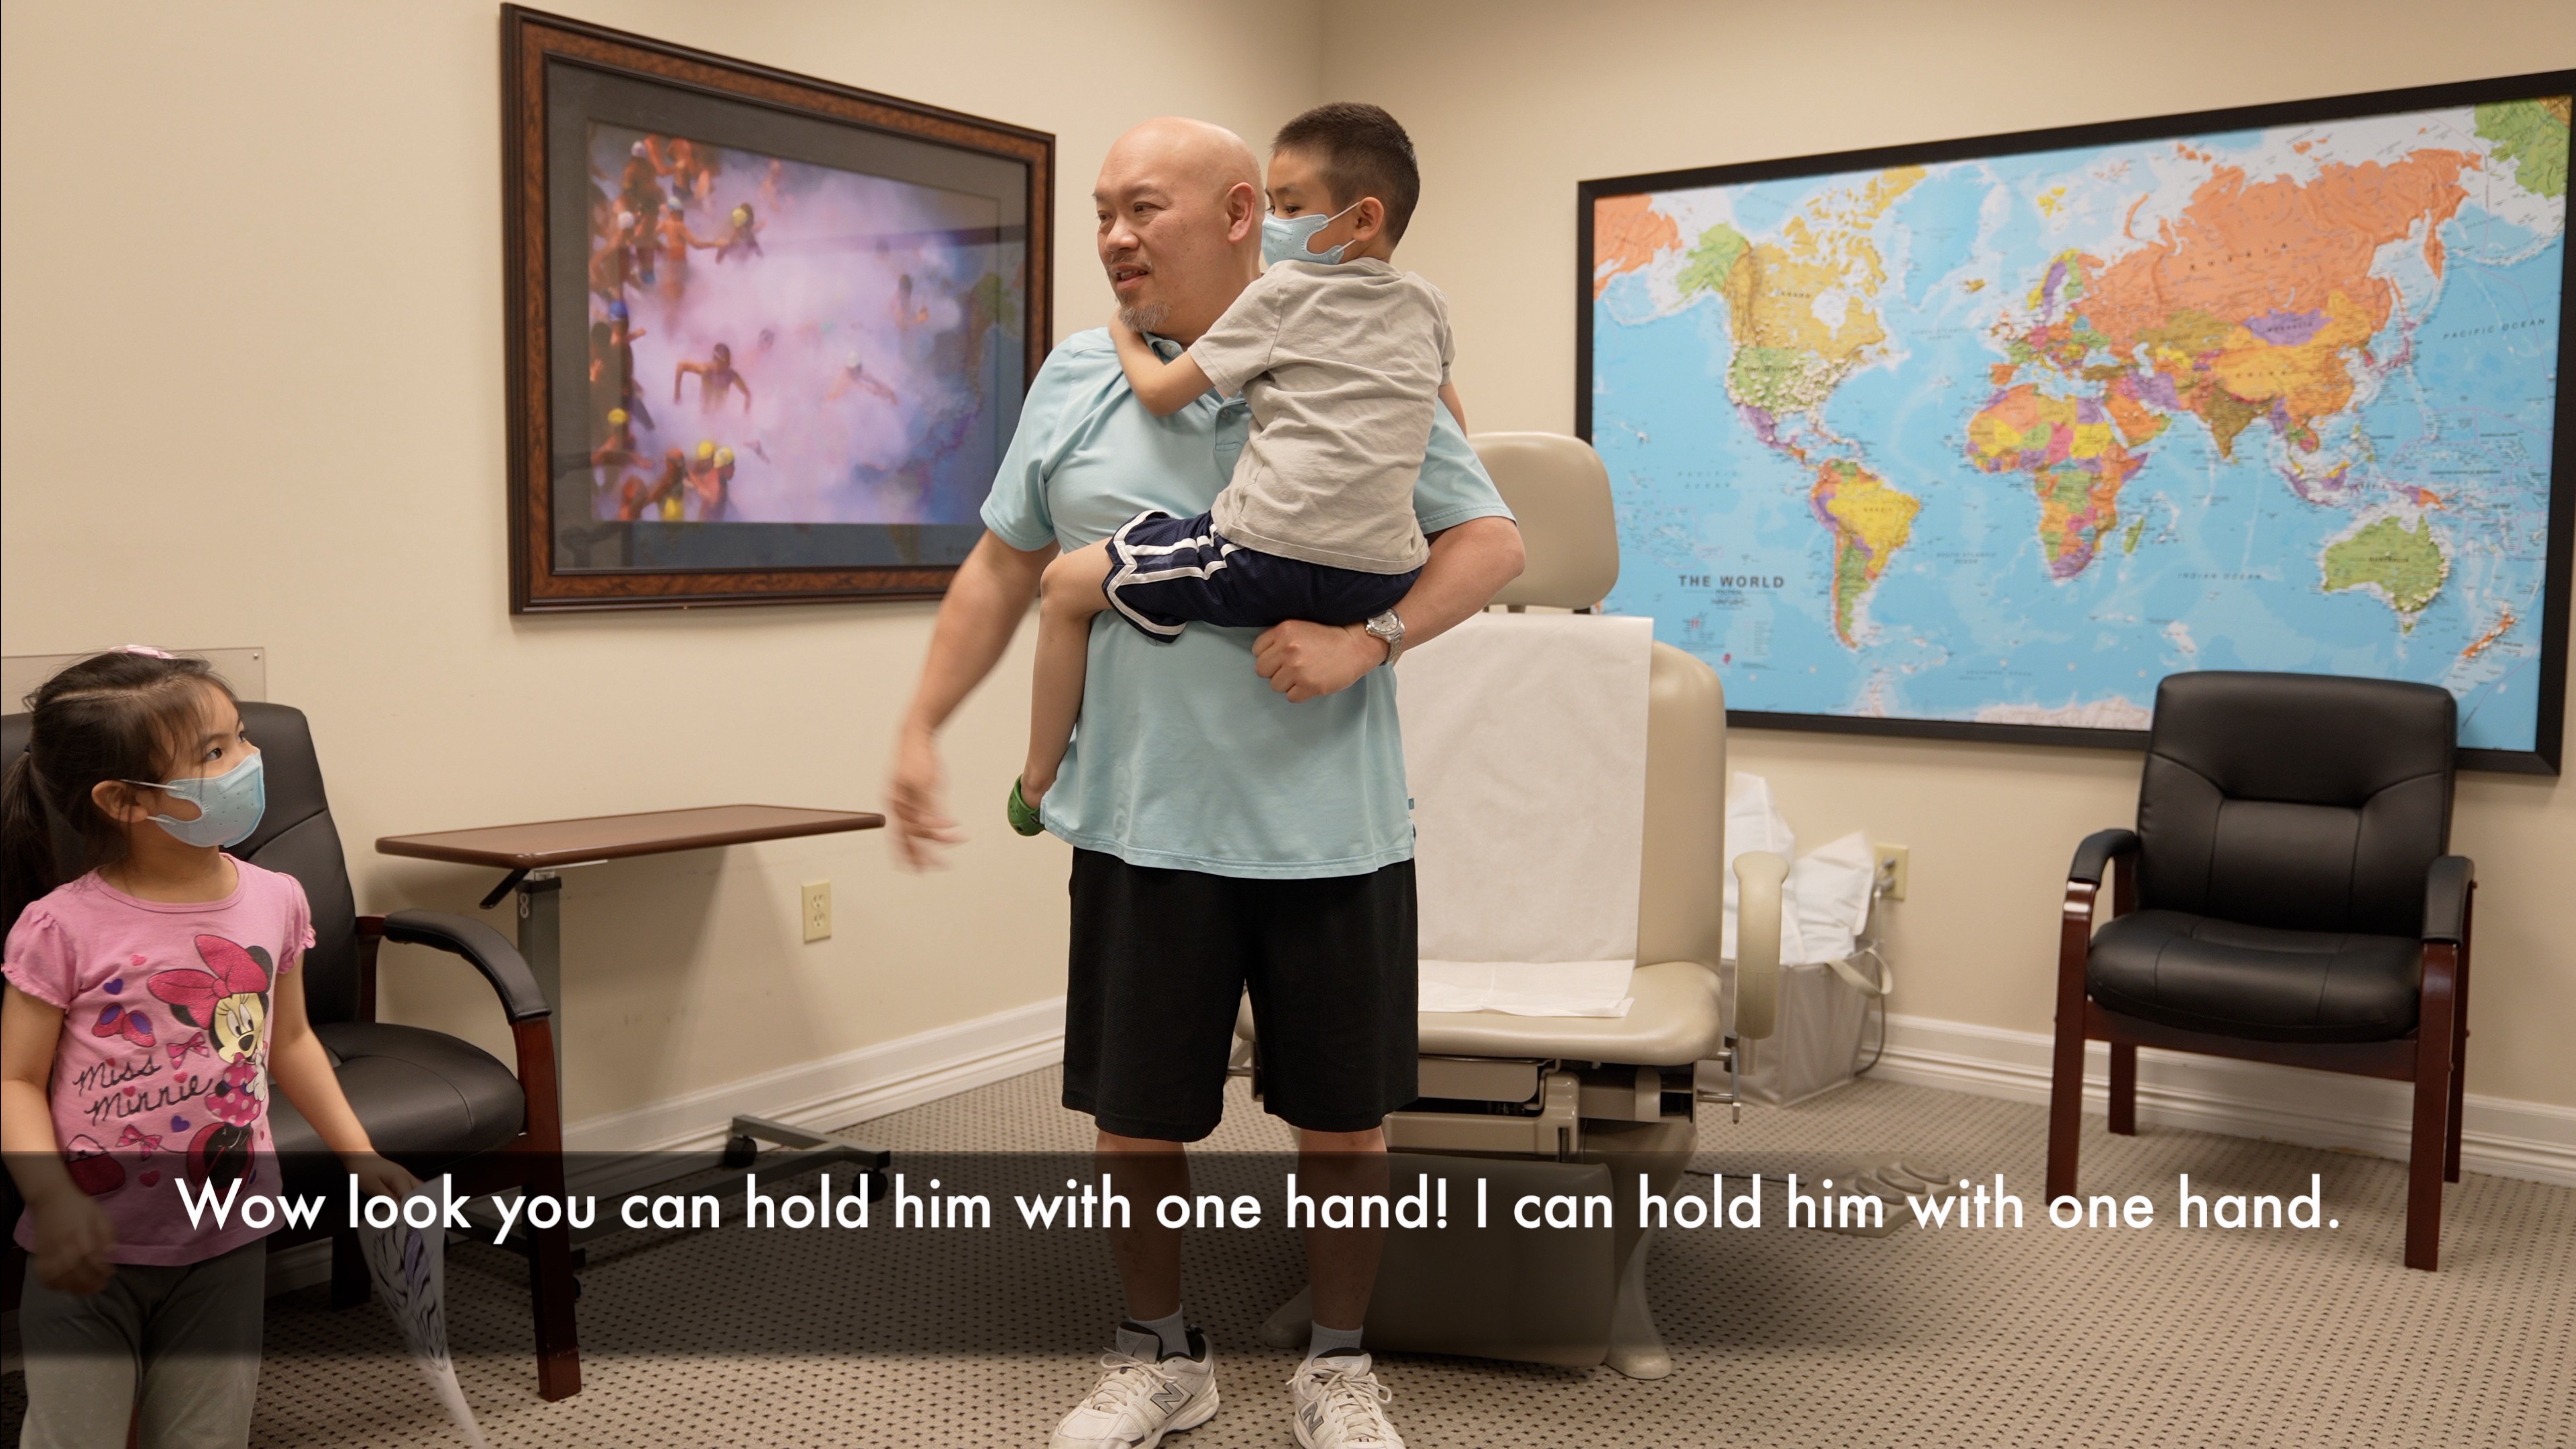 Wow look you can hold him with one hand! After treatment by Edward Tobinick, M.D.